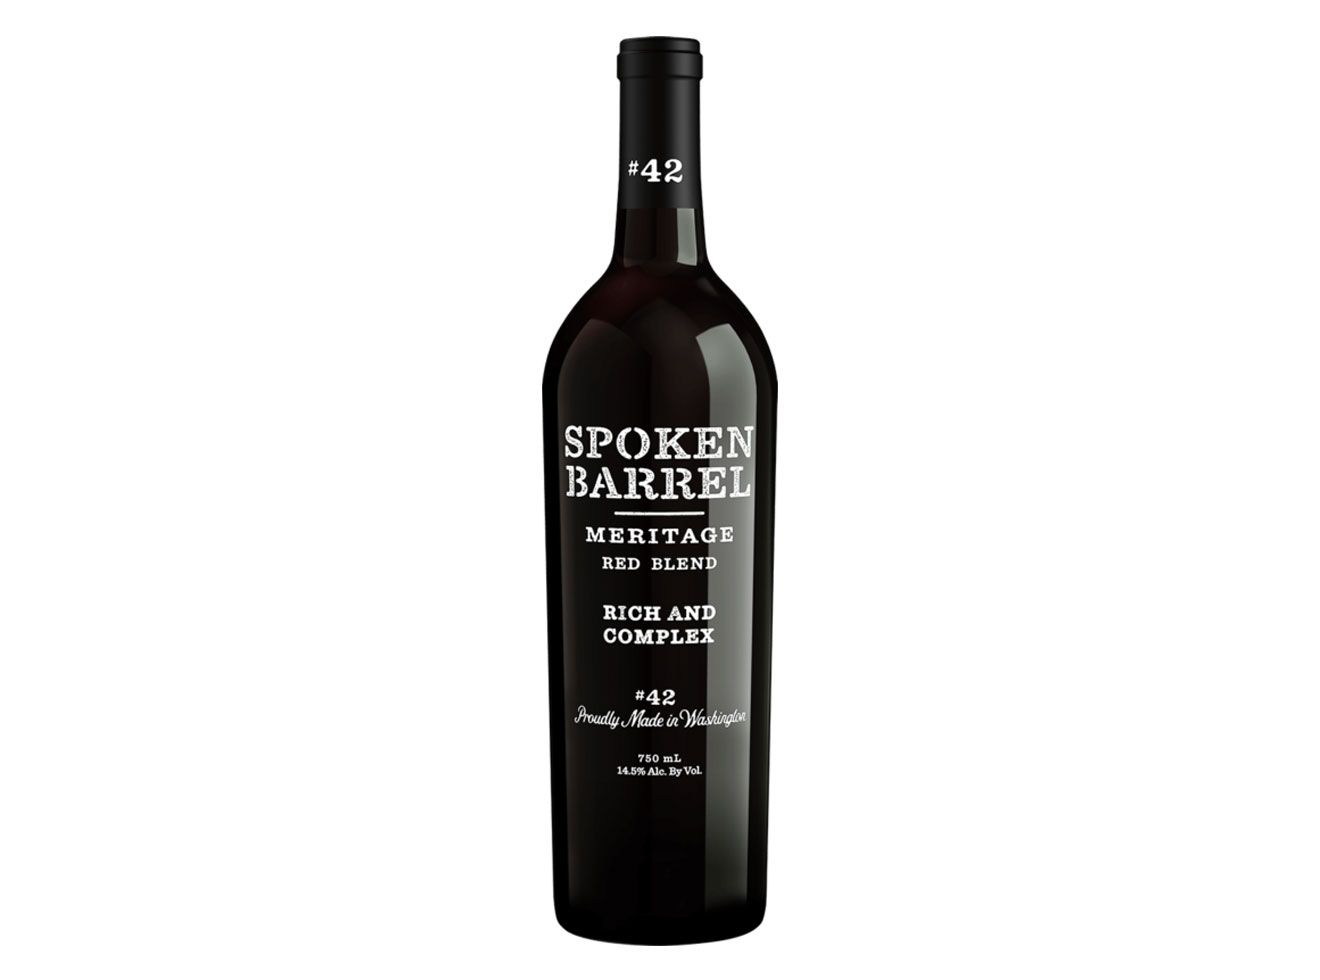 Spoken Barrel 2015 Meritage Red Blend